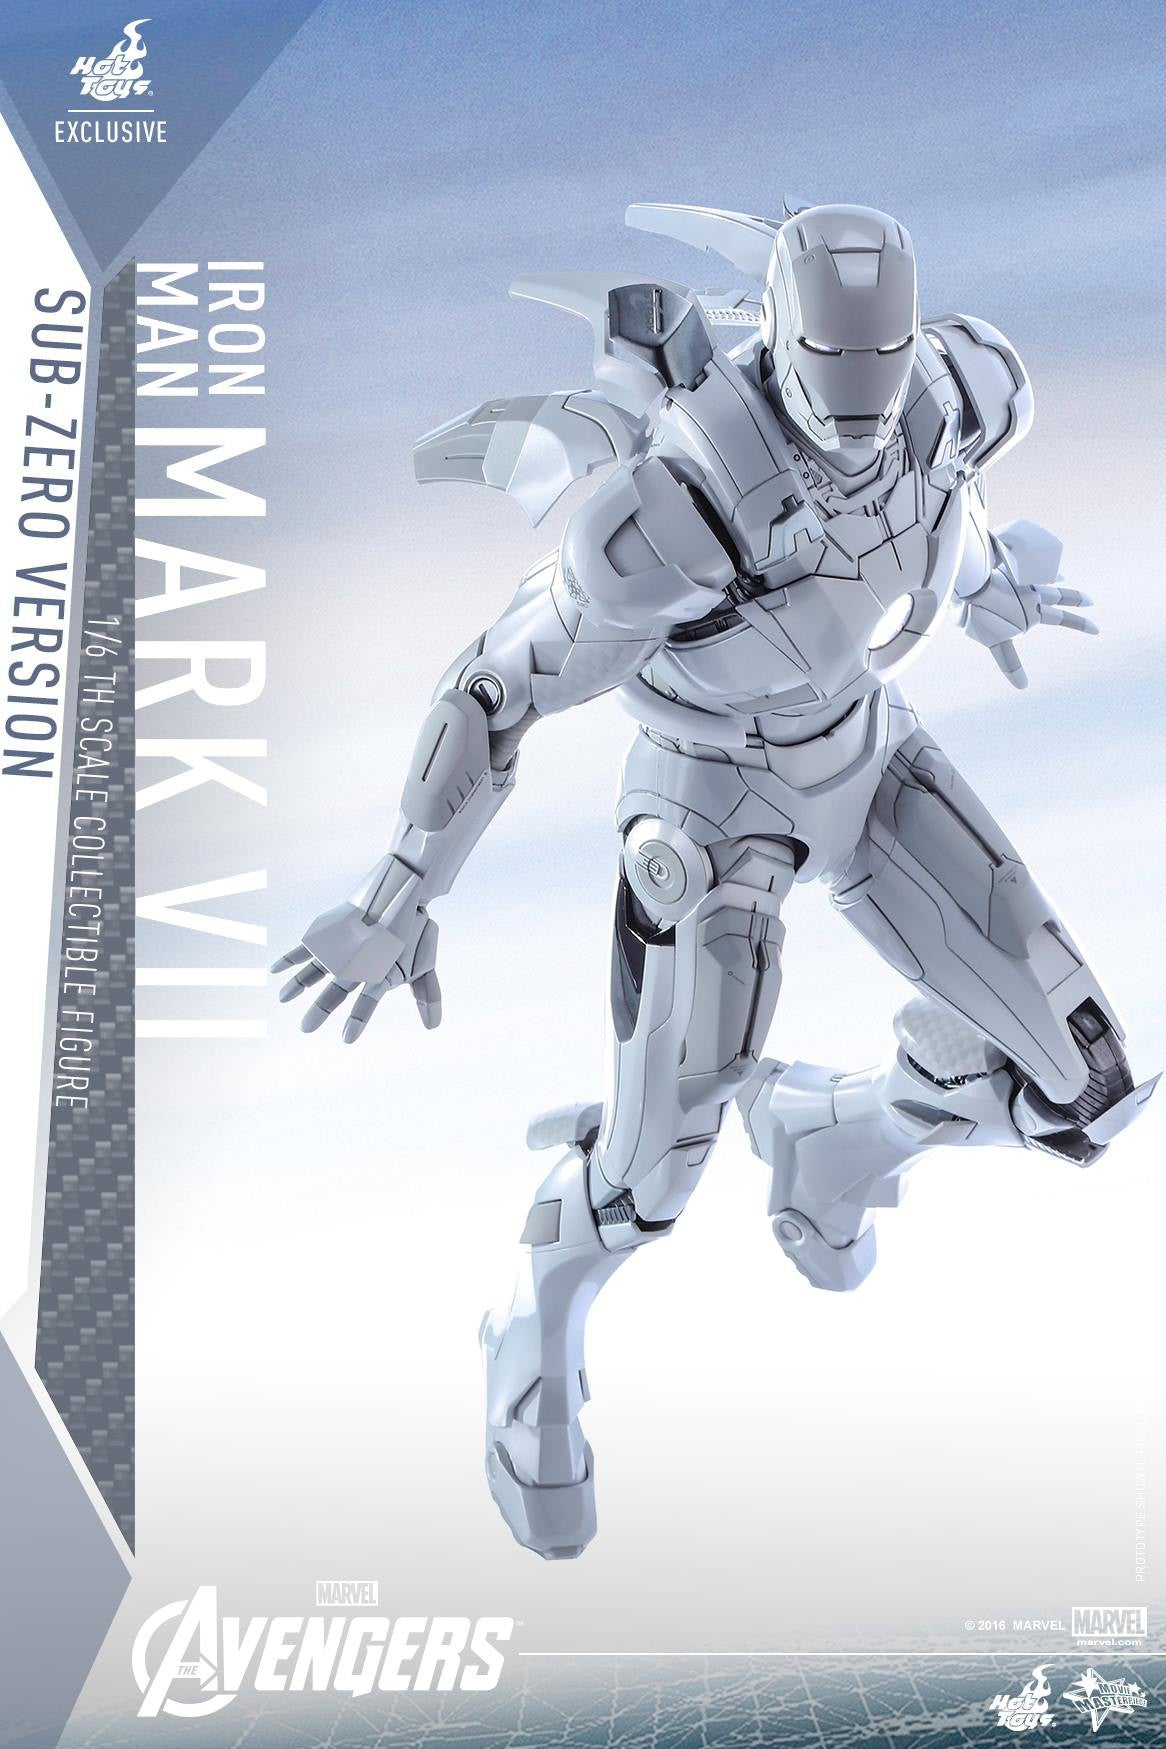 (IN STOCK) Hot Toys - MMS329 - The Avengers - Iron Man Mark VII (Sub-Zero Version) - Marvelous Toys - 5